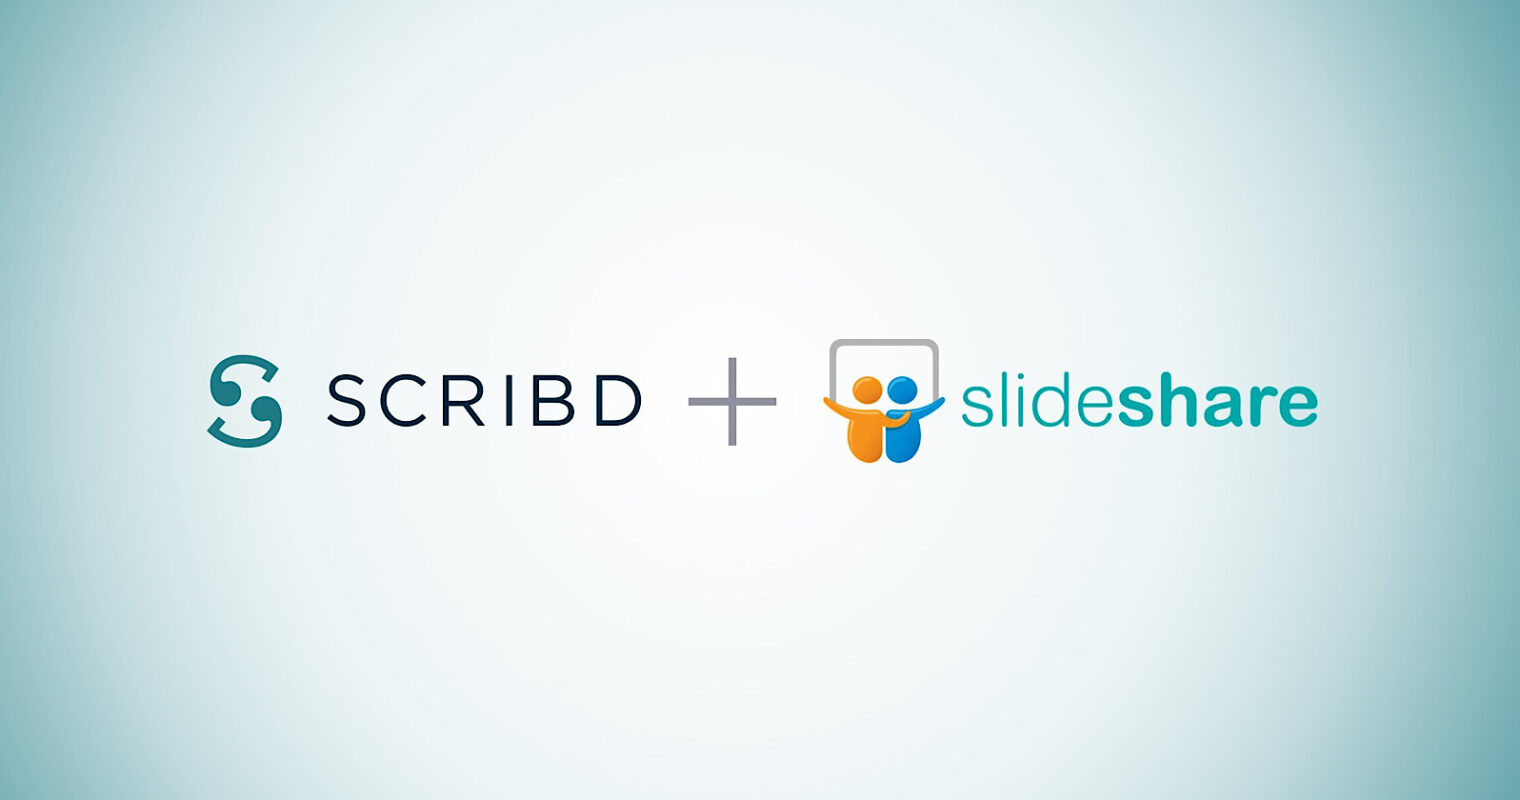 LinkedIn Sells SlideShare to Scribd